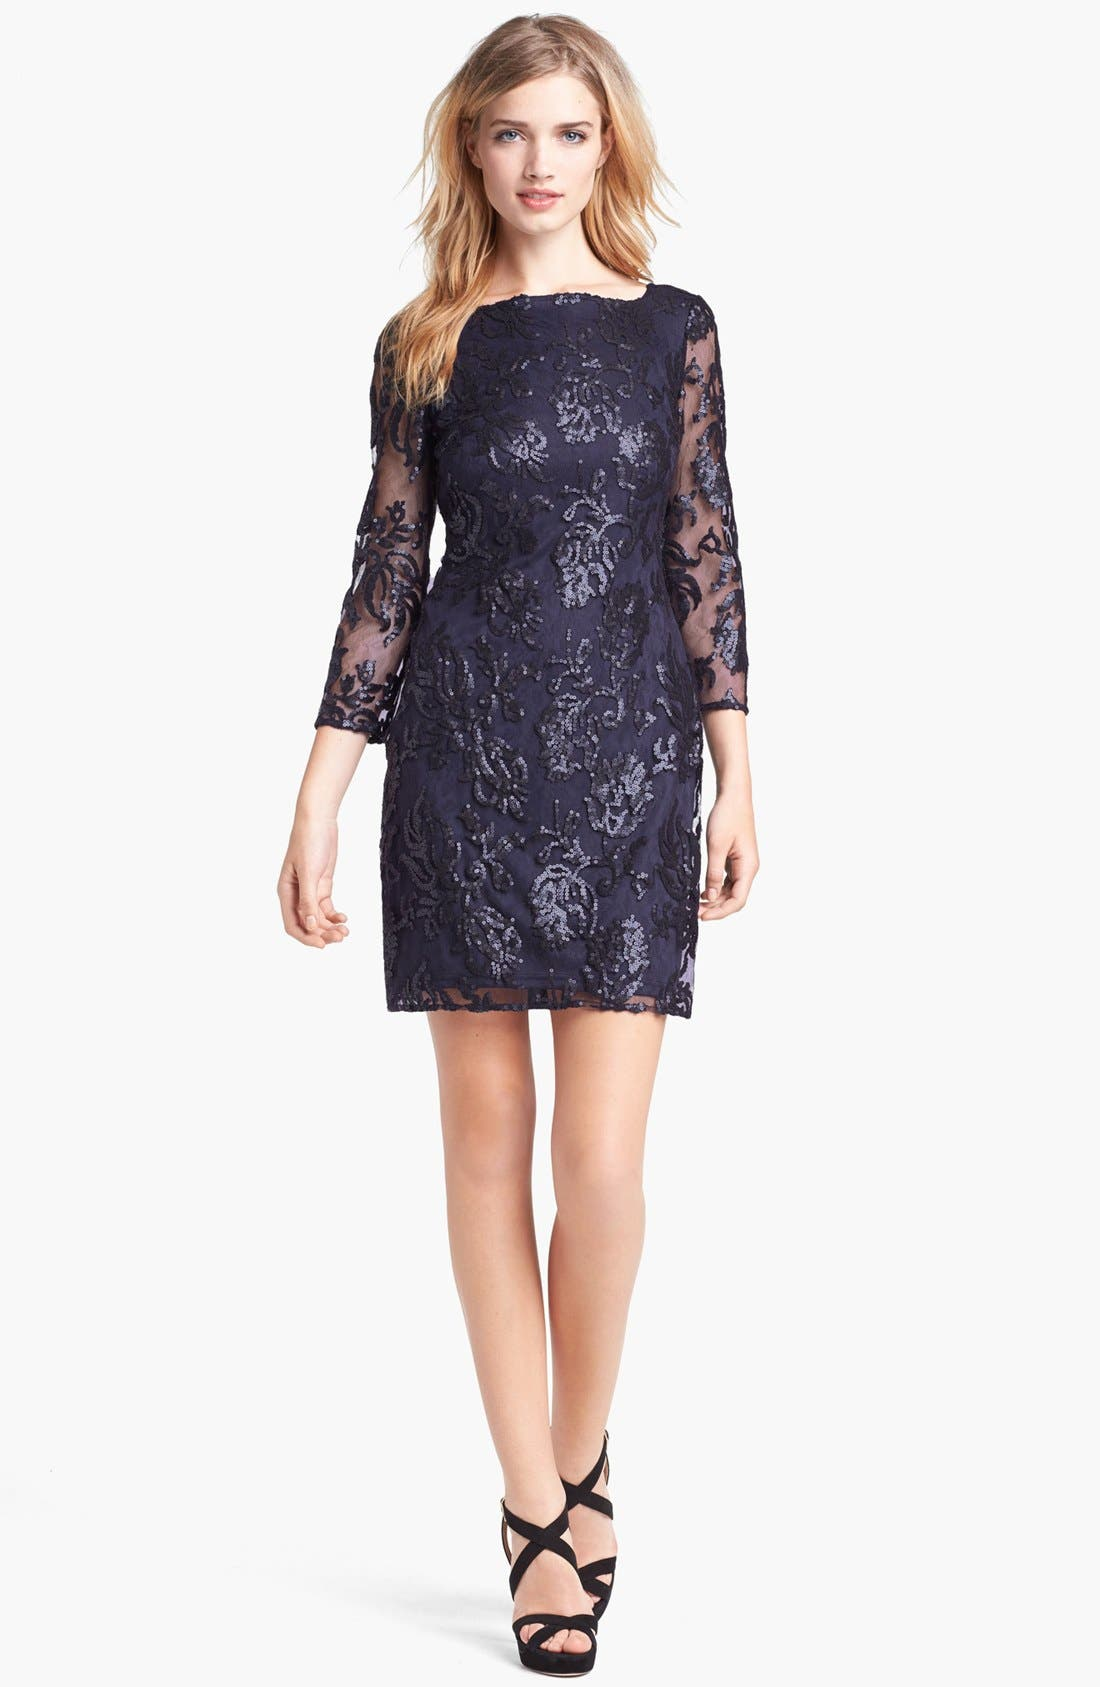 Alternate Image 1 Selected - Adrianna Papell Sequin Lace Dress (Regular & Petite)